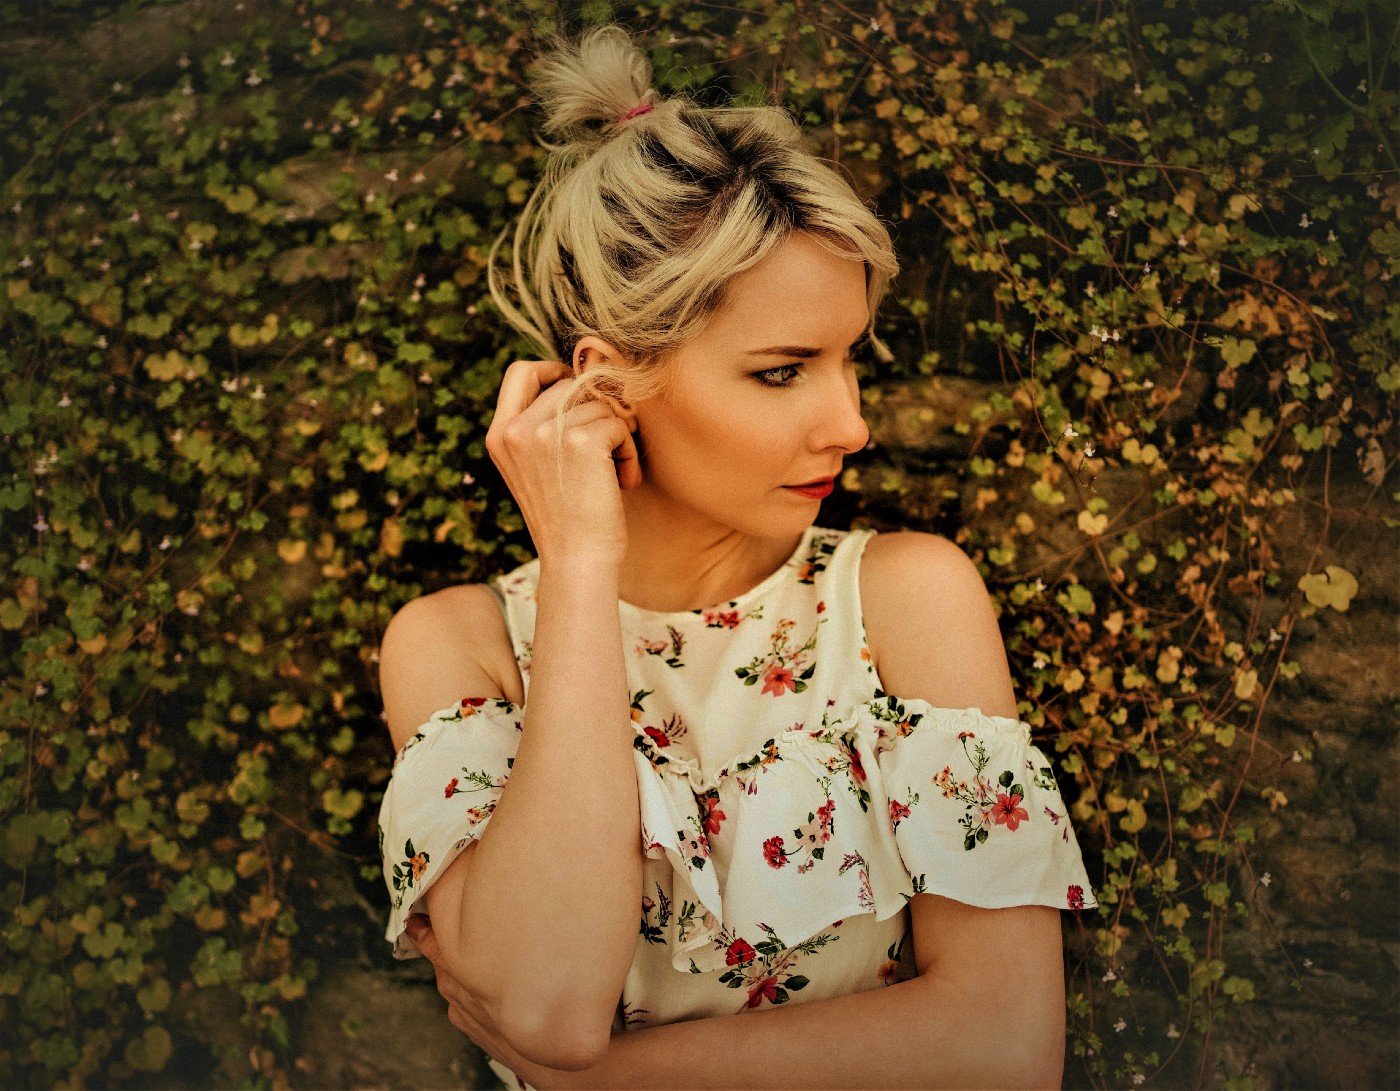 pensive woman with blonde hair tied up on her head wearing flowered dress and holding right ear with right hand